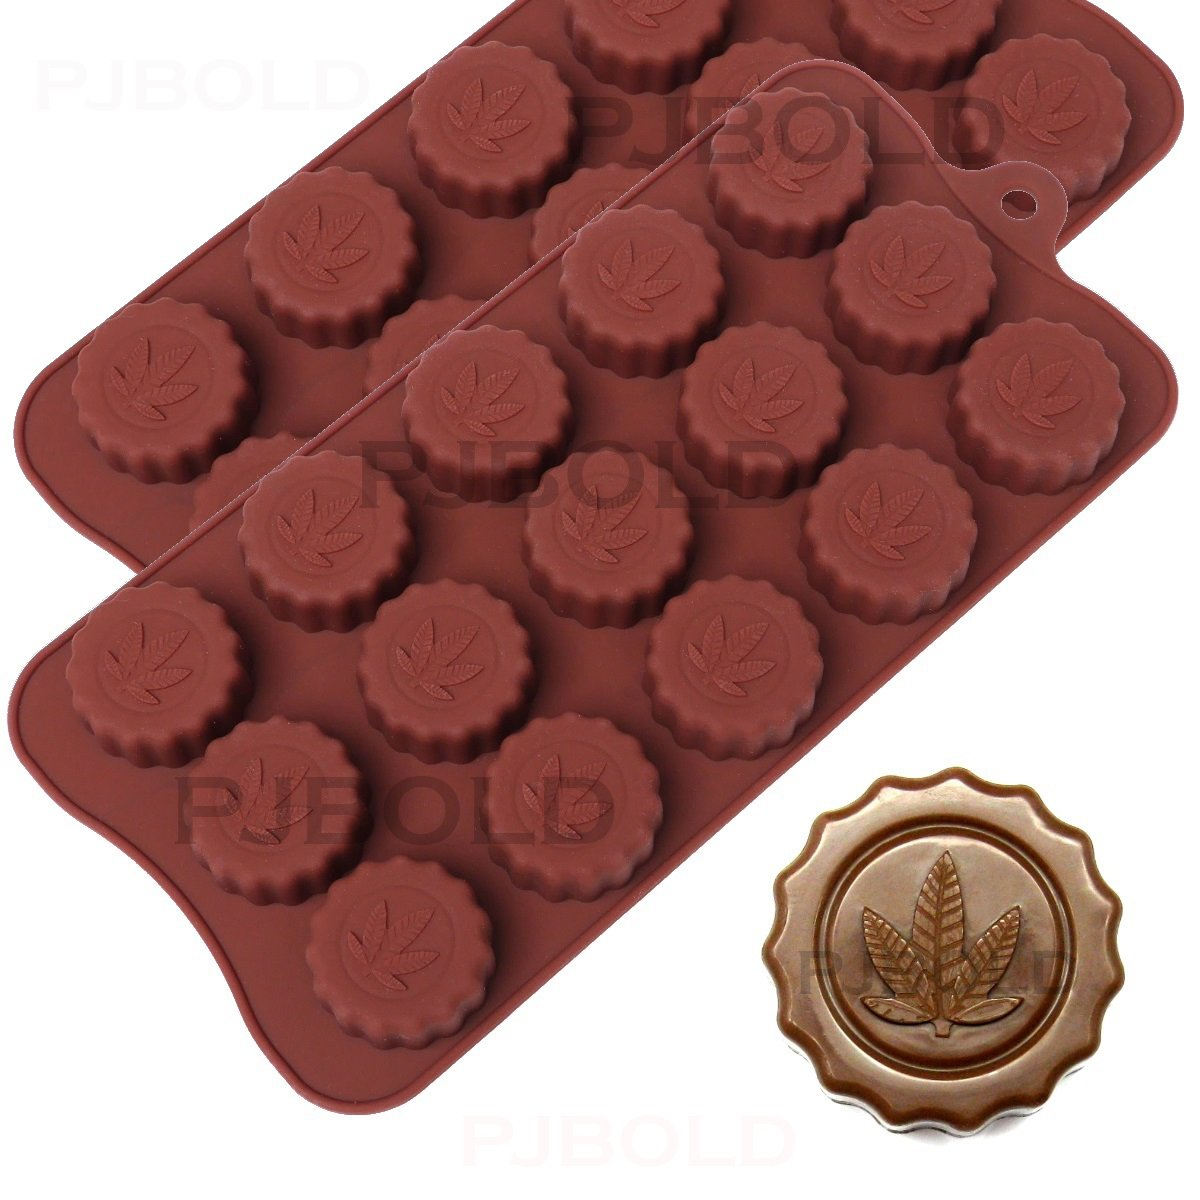 Marijuana Leaf Embossed Silicone Chocolate Candy Mold Ice Cube Trays, 2 Pack QGP Q1049